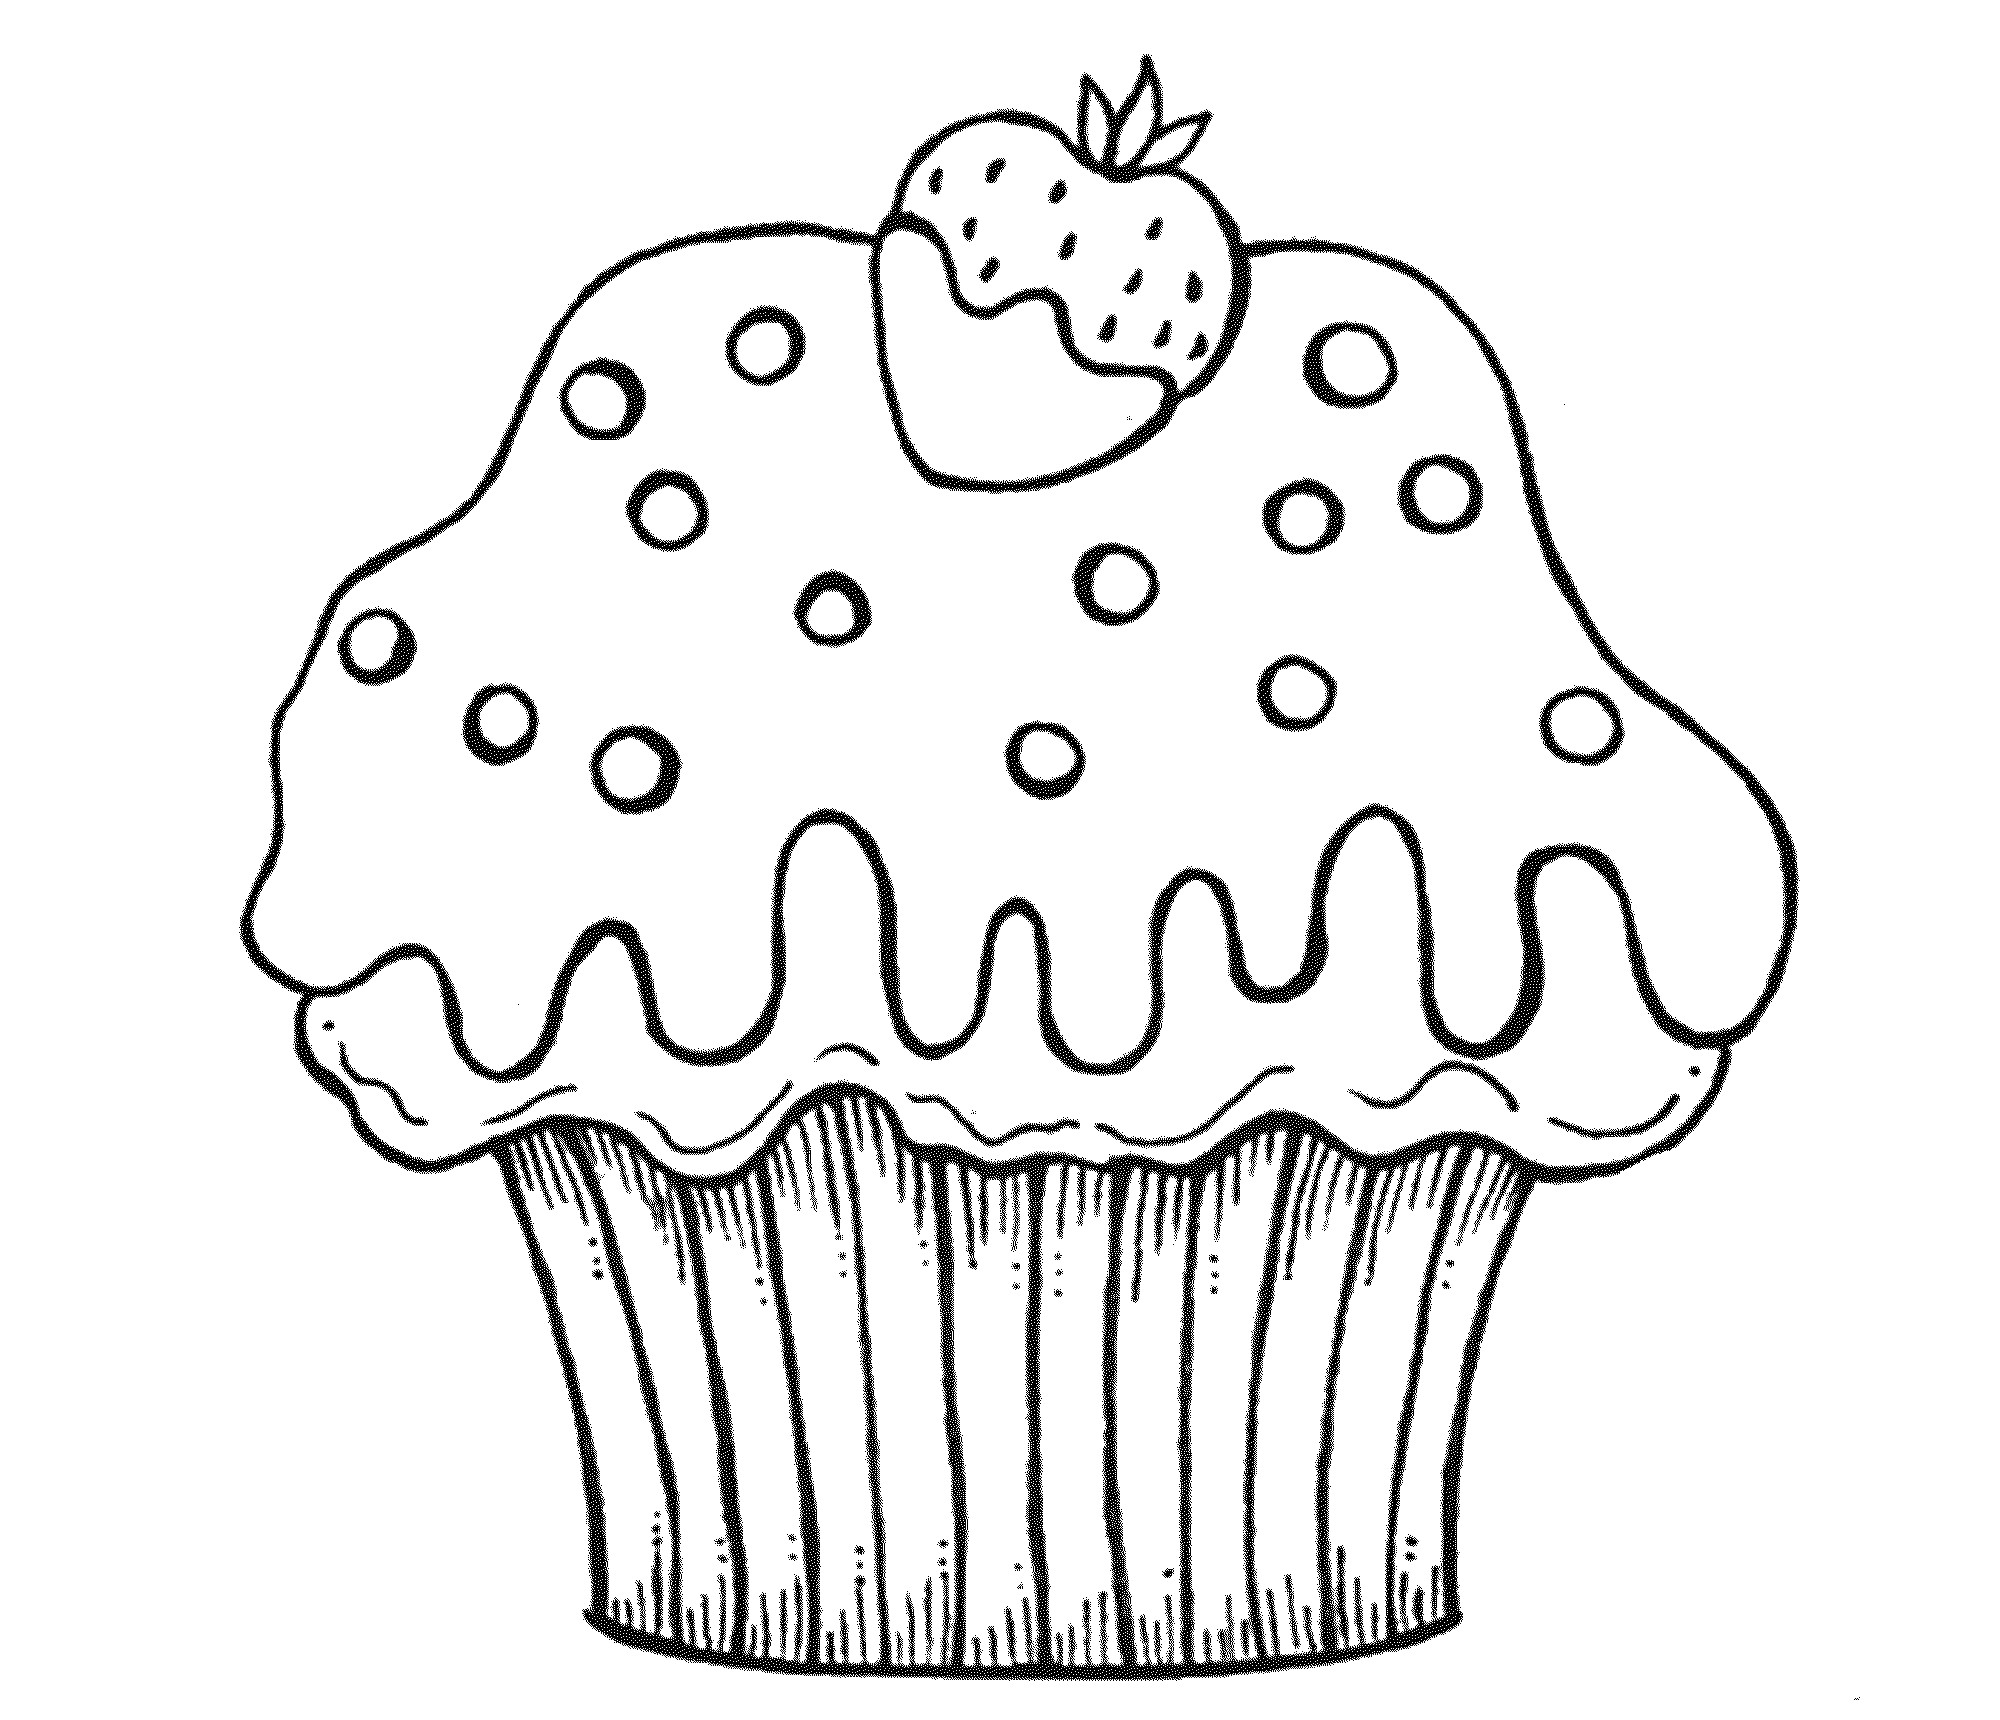 2000x1720 Cute Cupcake Coloring Pages Acpra Cupcake Pictures To Color